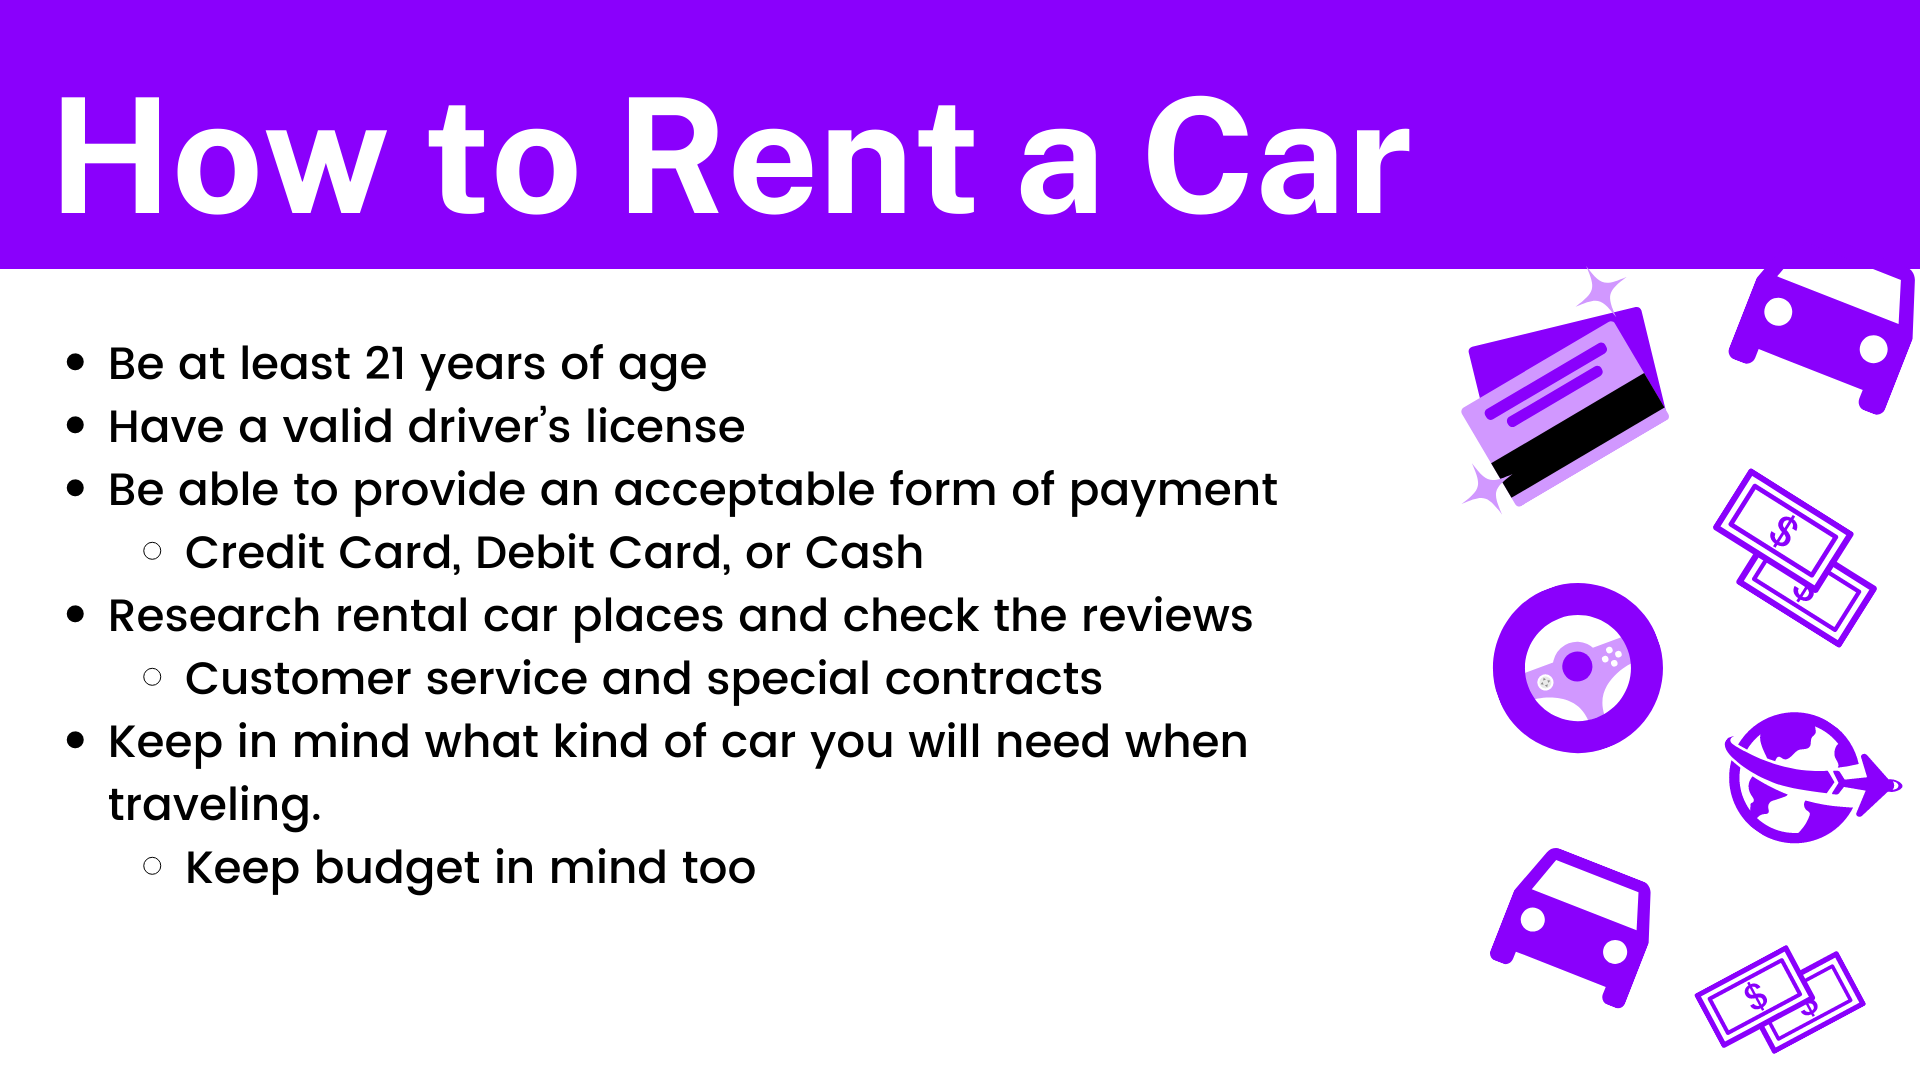 Be at least 21 years of age. Have a valid driver's license. Be able to provide an acceptable form of payment (Credit Card, Debit Card, or Cash). Research rental car places and check the reviews (Customer service and special contracts). Keep in mind what kind of car you will need when traveling. Keep budget in mind too.